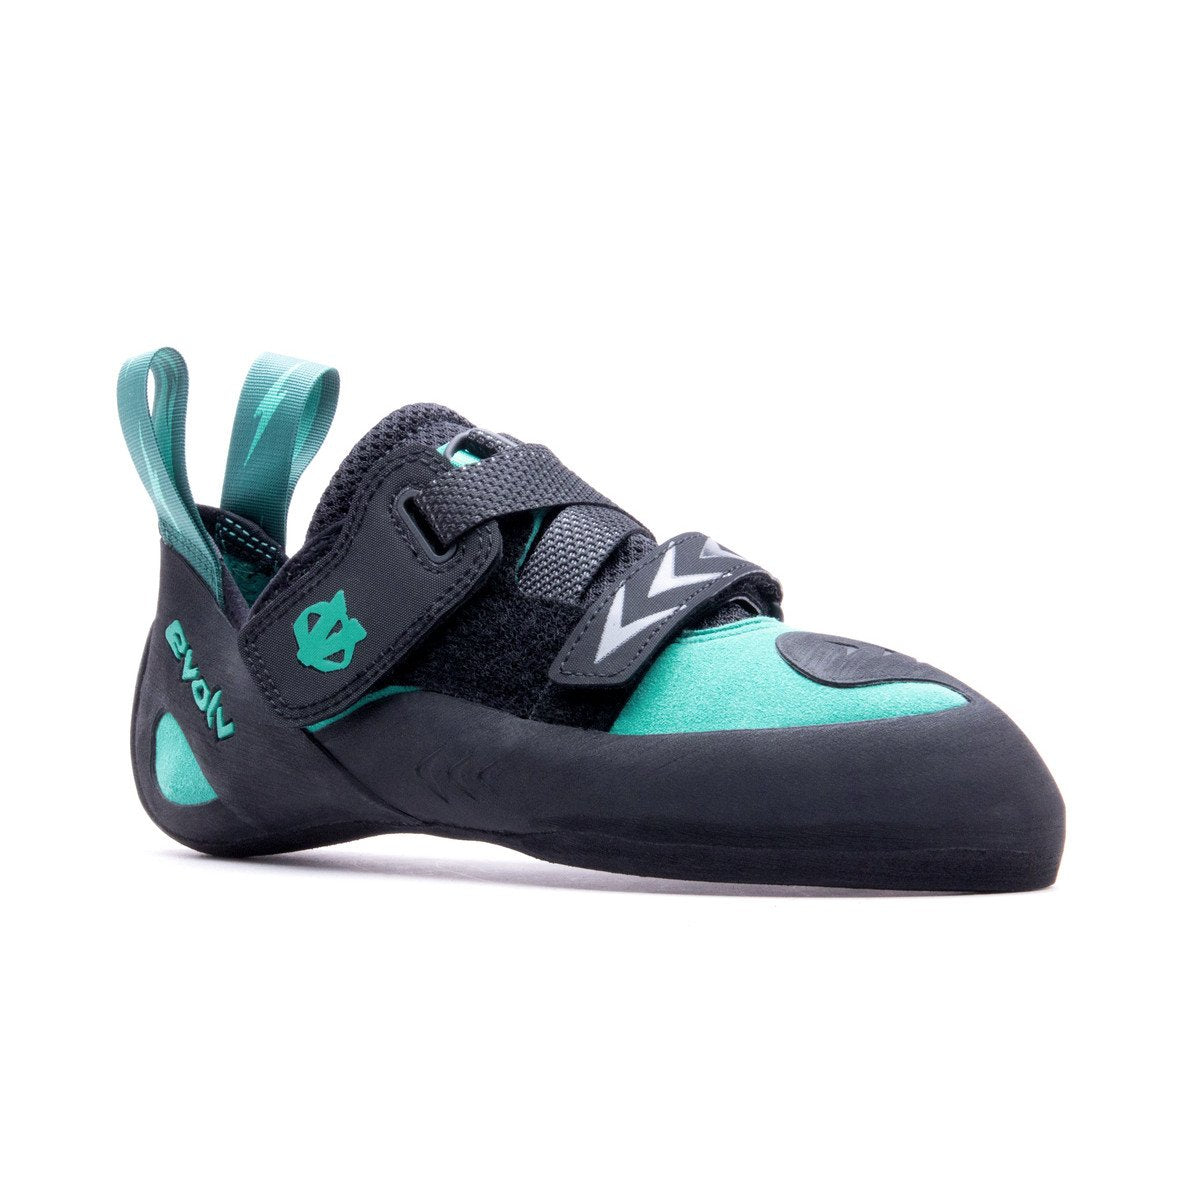 Evolv Kira Womens Climbing Shoe, front/side view in green and black colours